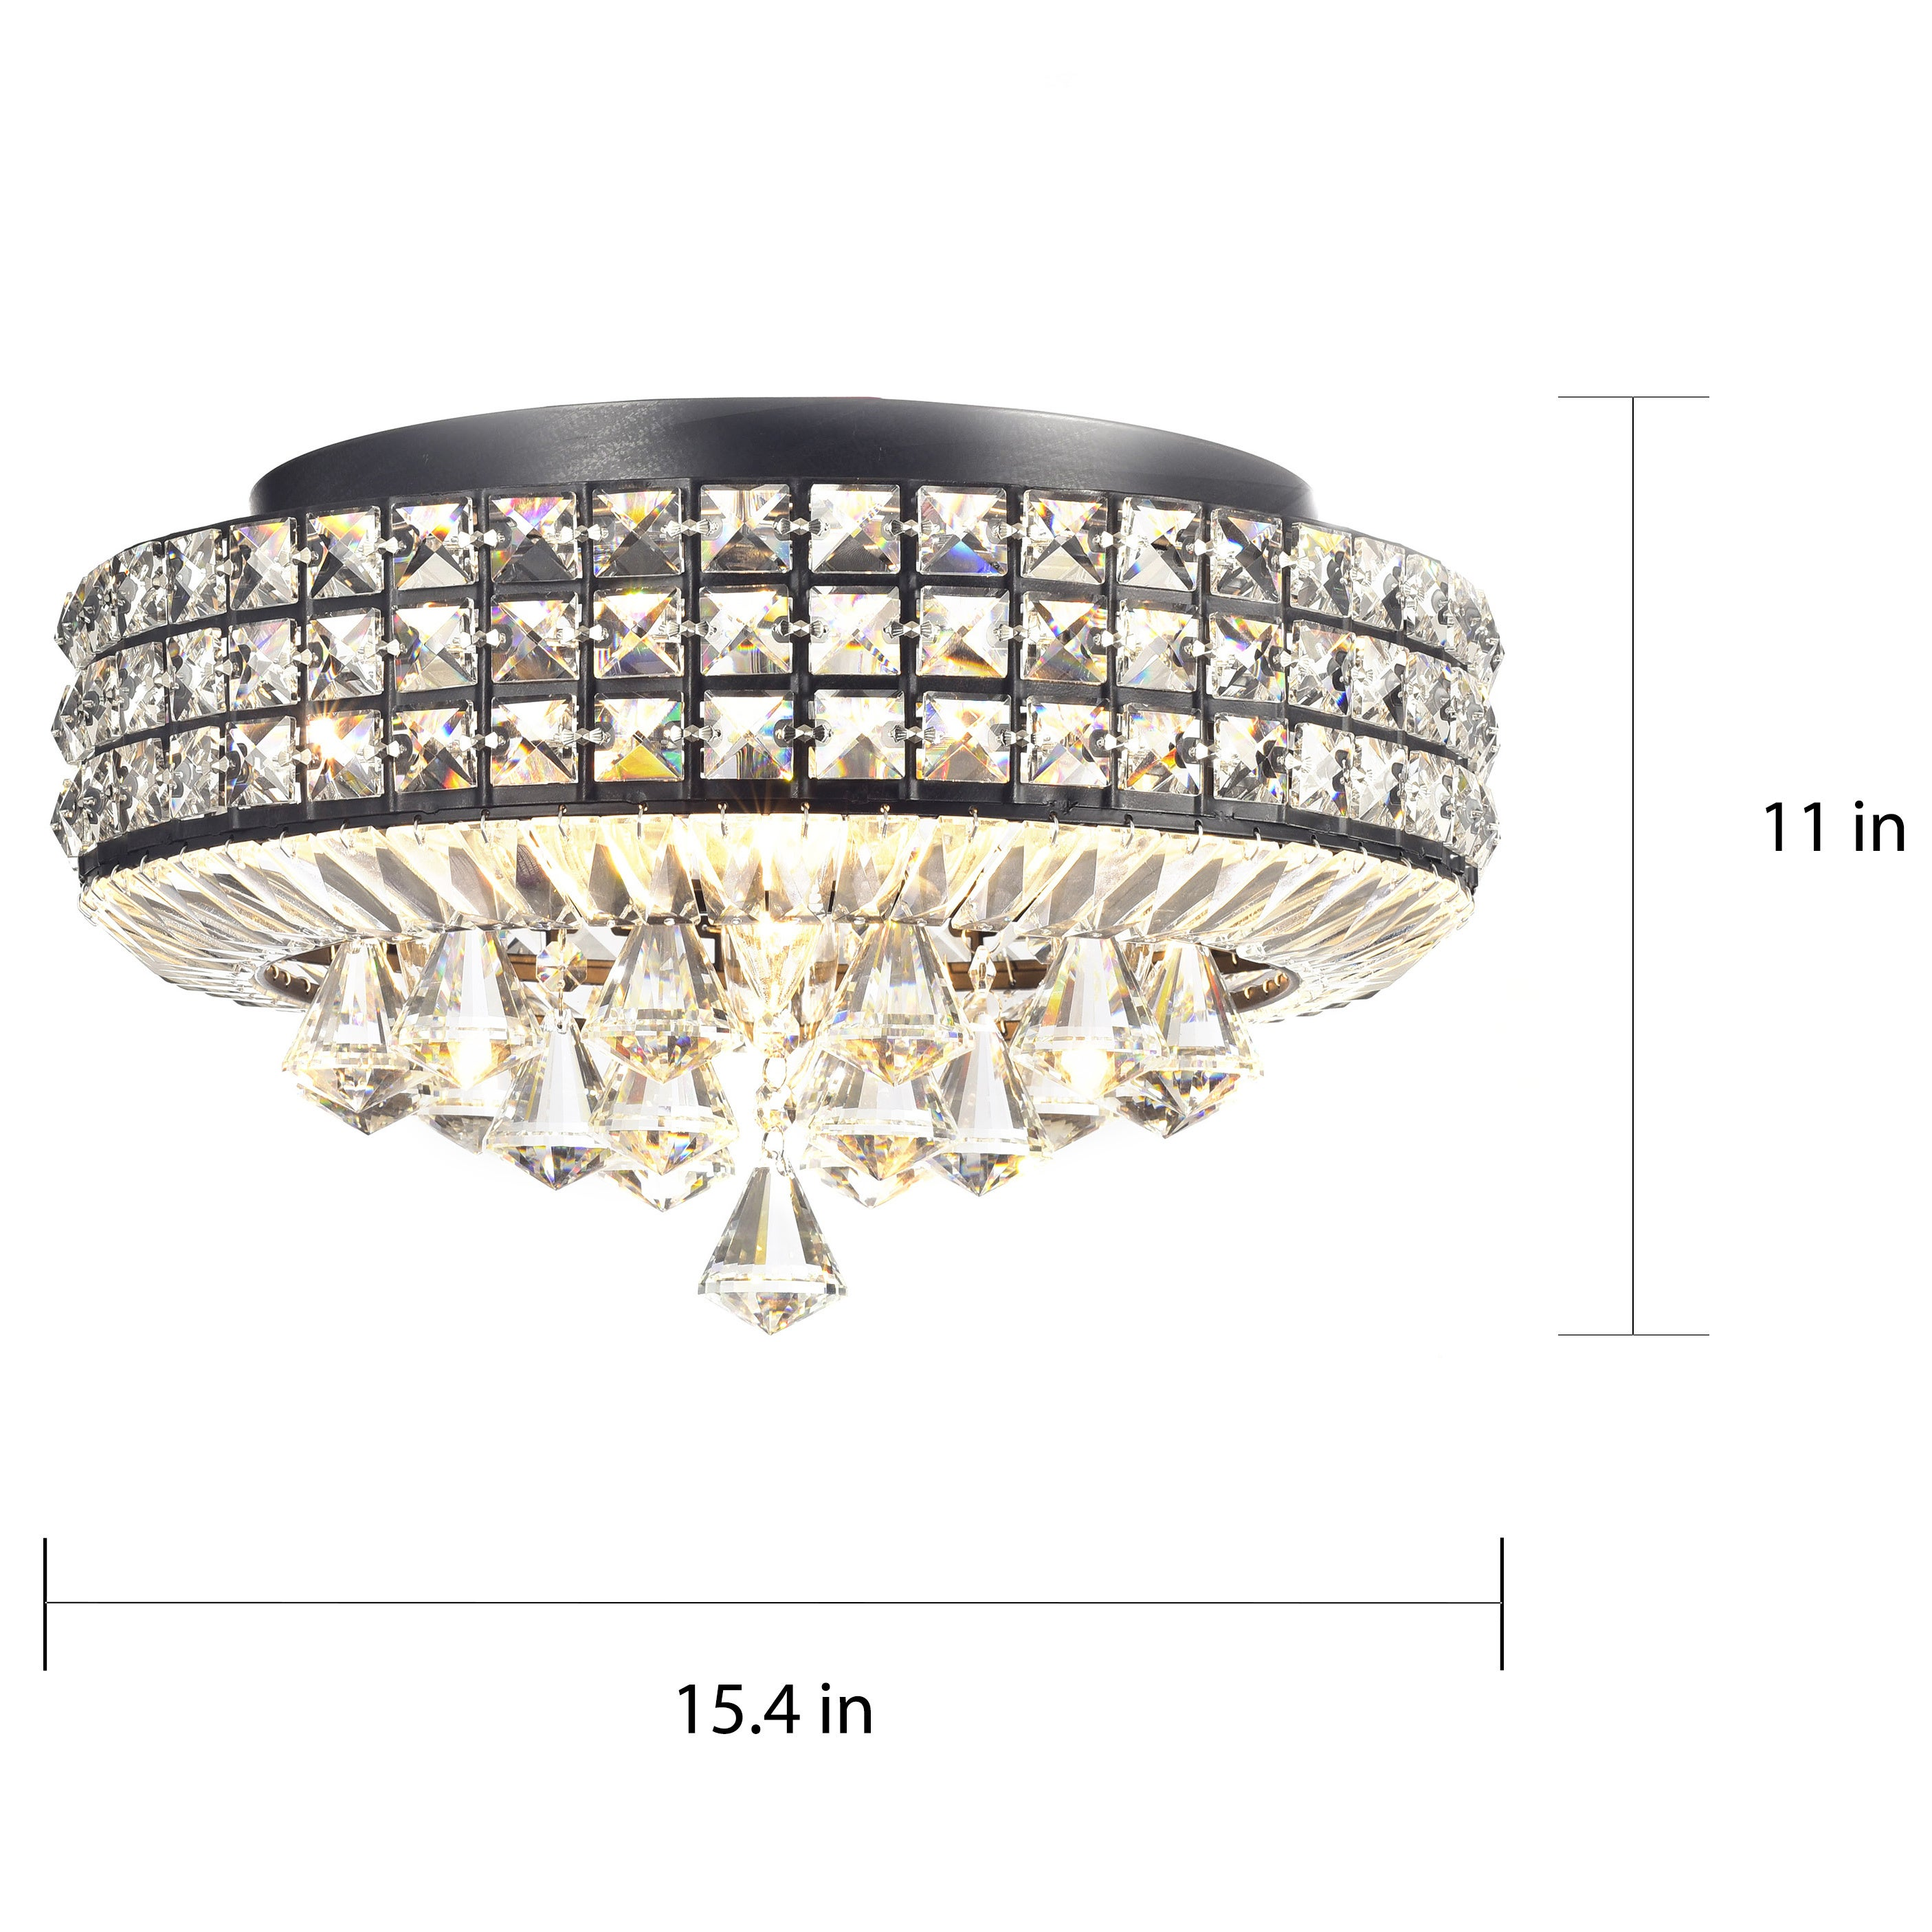 products wx xiertekusa wroght hx h iron light wrough fs drop index all glass xtk ring crystal chandelier heidi rustic trays